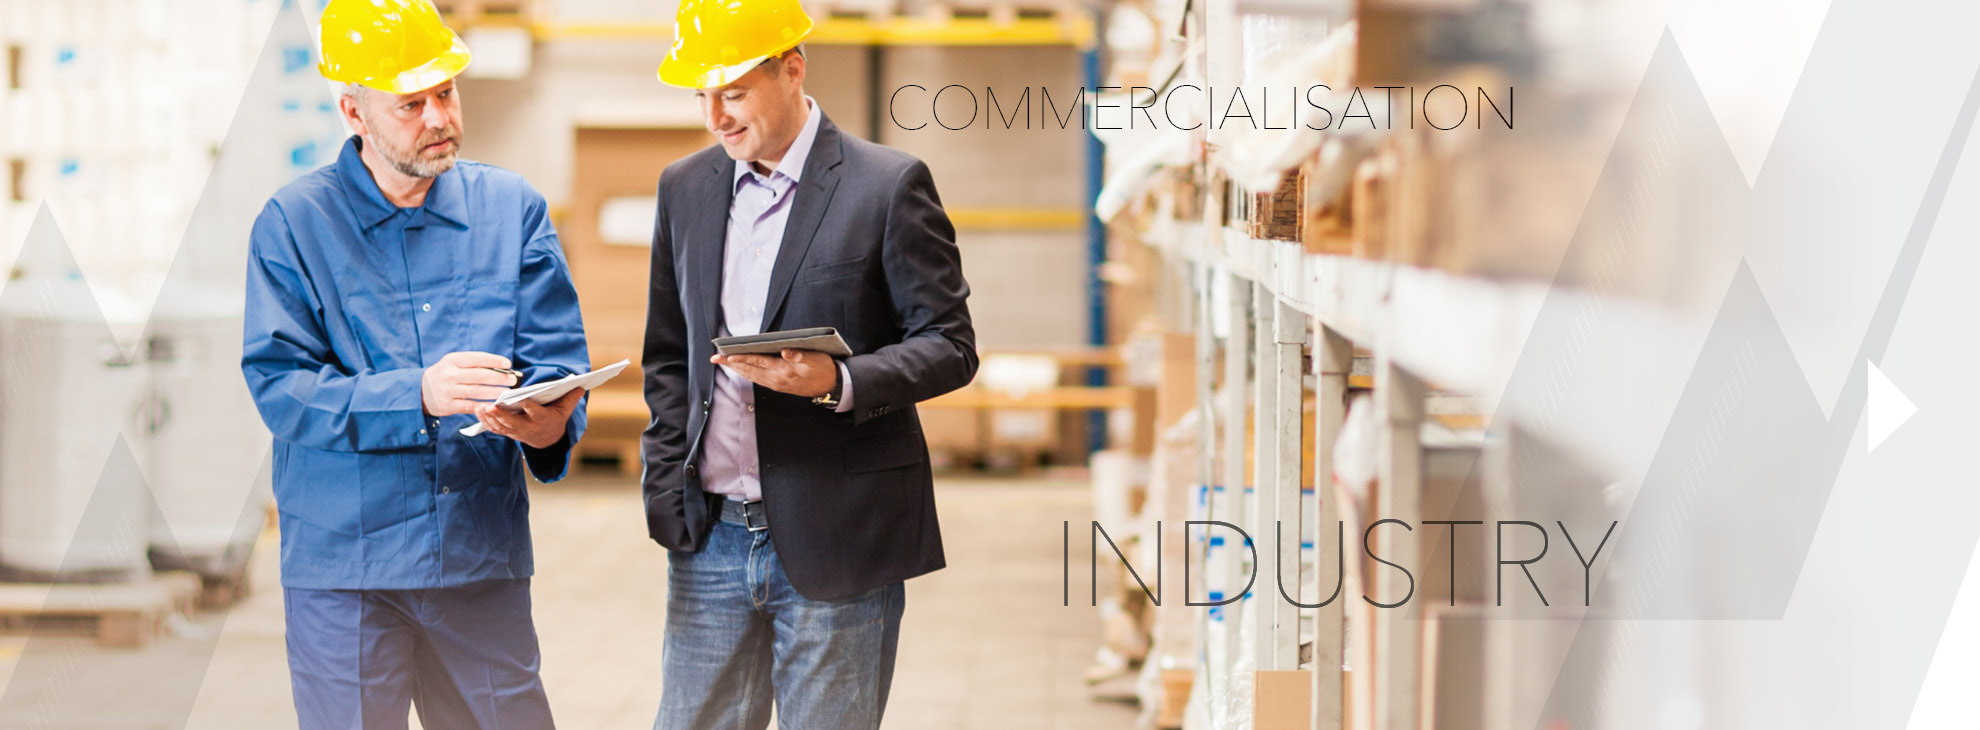 Commercialisation and Industry